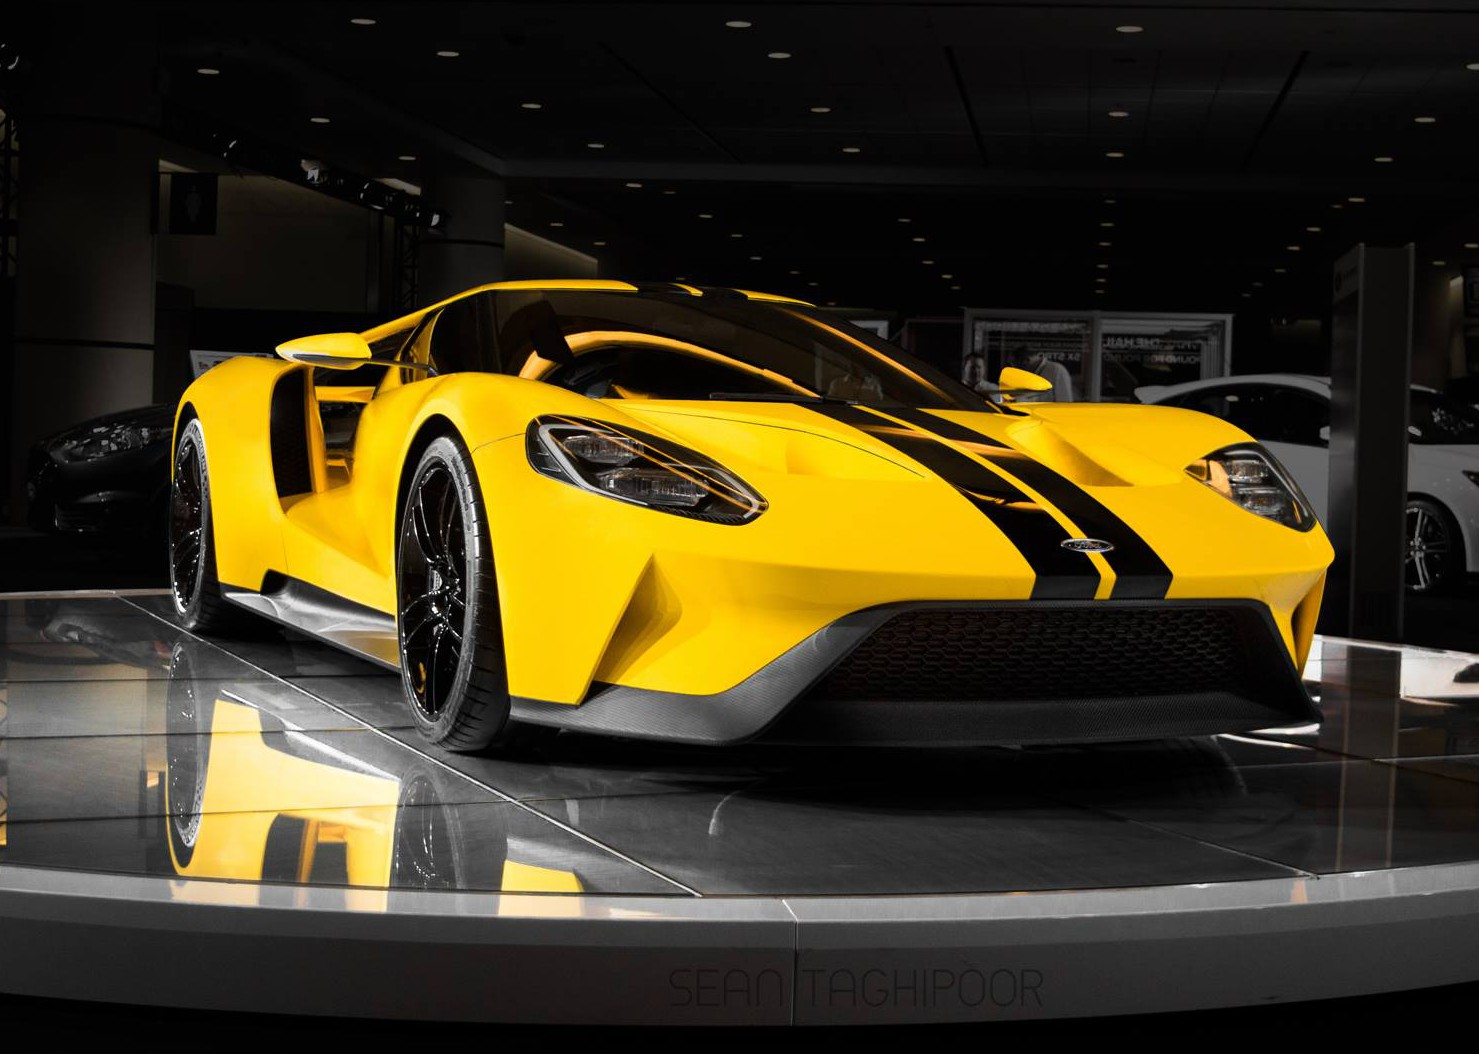 2017 Ford Gt Output 647hp 745nm And 216mph Top Speed